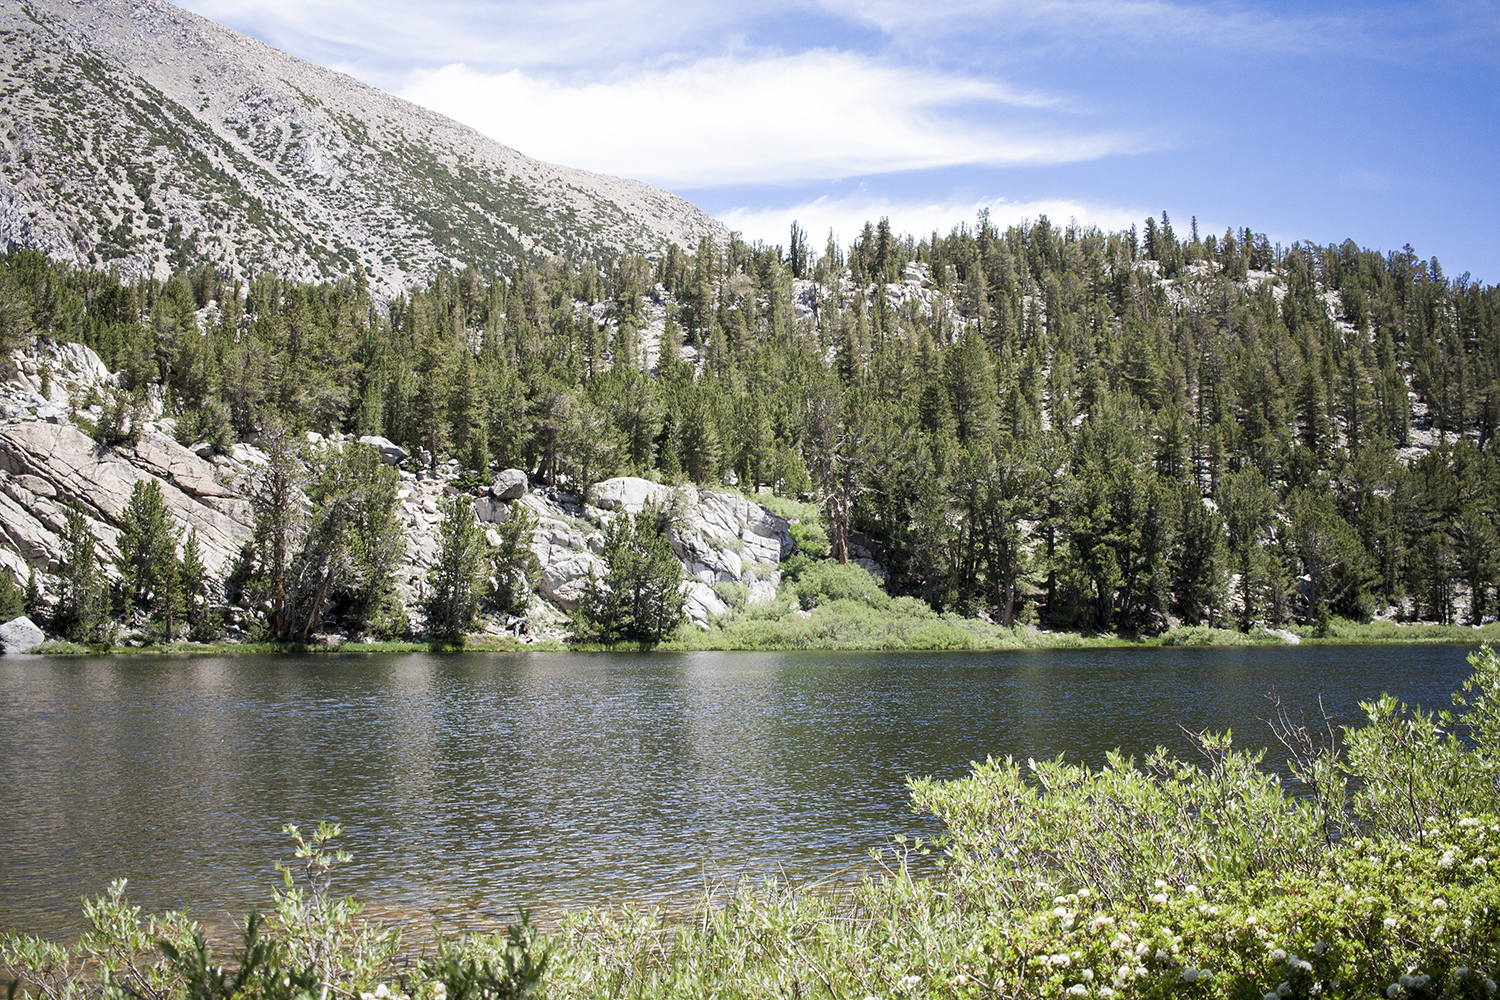 Big Pine Creek, Inyo National Forest, Fourth Lake, John Muir Wilderness, Big Pine North Fork Trail, Mountains, Hiking